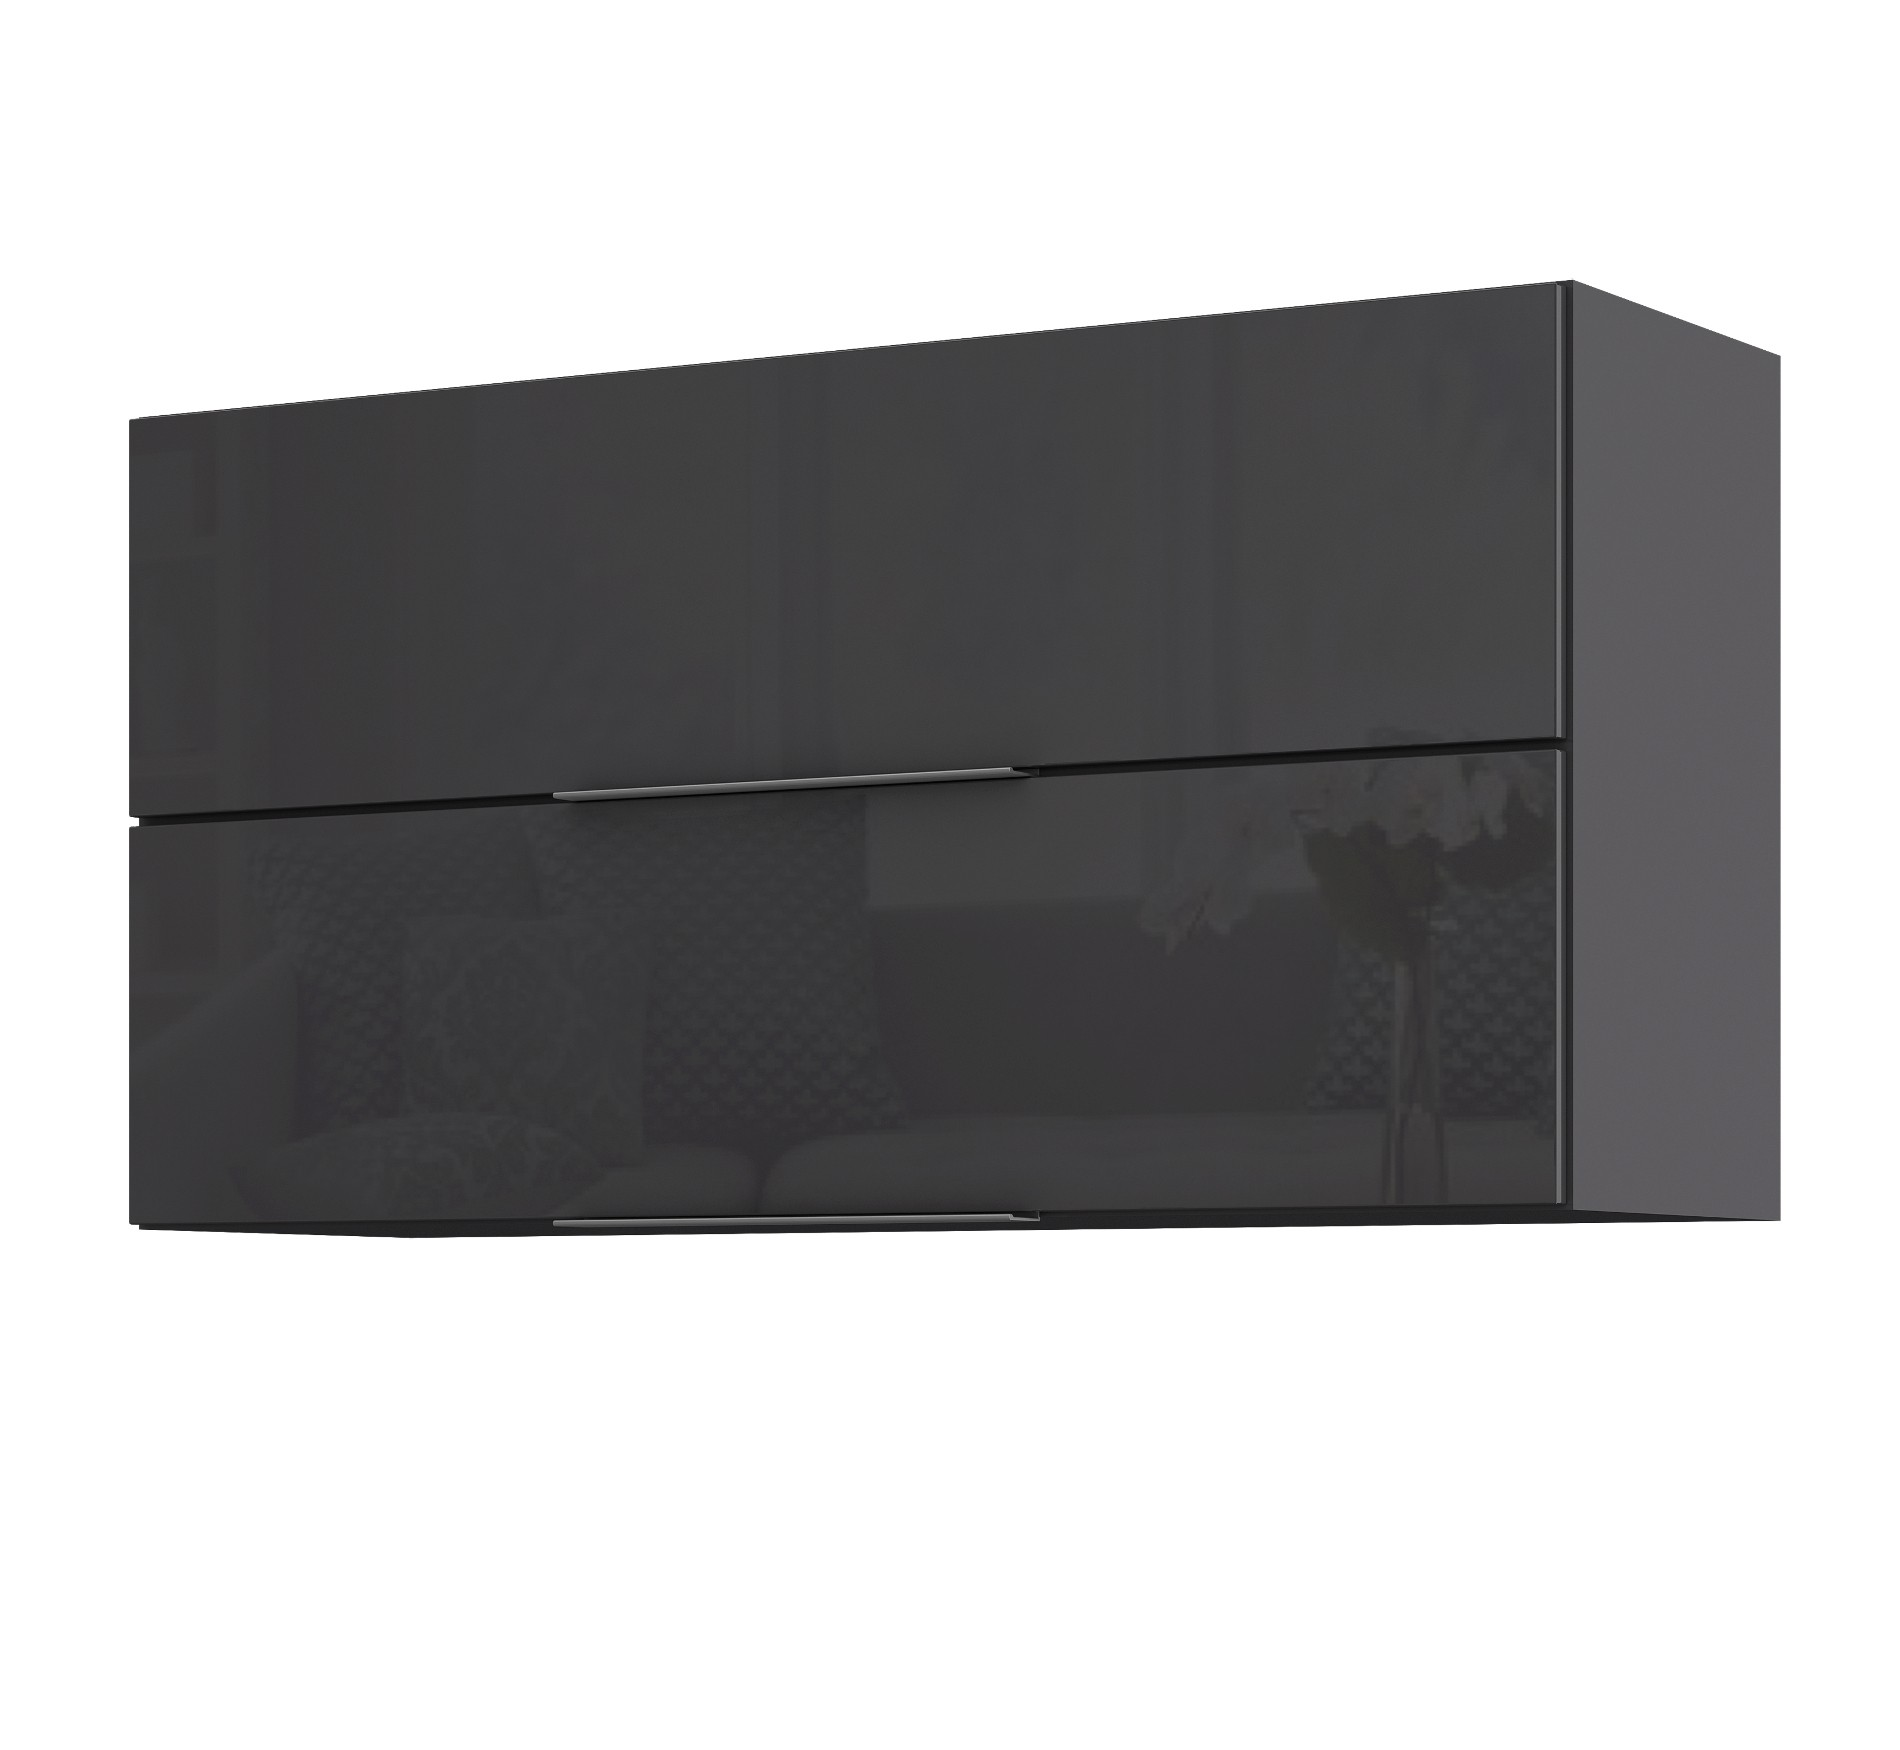 k chen h ngeschrank hamburg 2 klappen 100 cm breit hochglanz grau k che hamburg. Black Bedroom Furniture Sets. Home Design Ideas